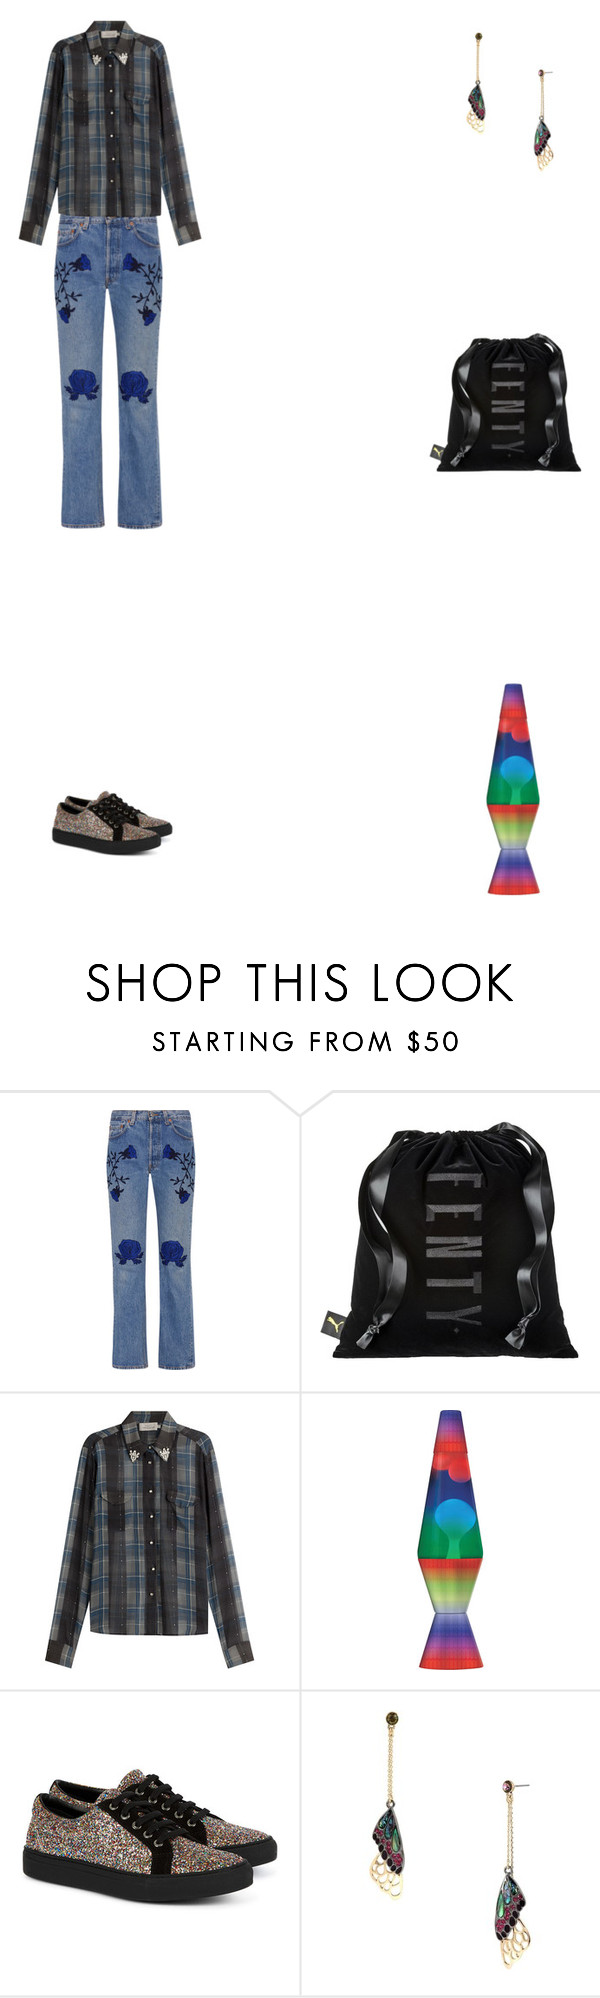 """""""Grace"""" by zoechengrace ❤ liked on Polyvore featuring Bliss and Mischief, Quarry, Preen, Lava, Sonia Rykiel and Betsey Johnson"""